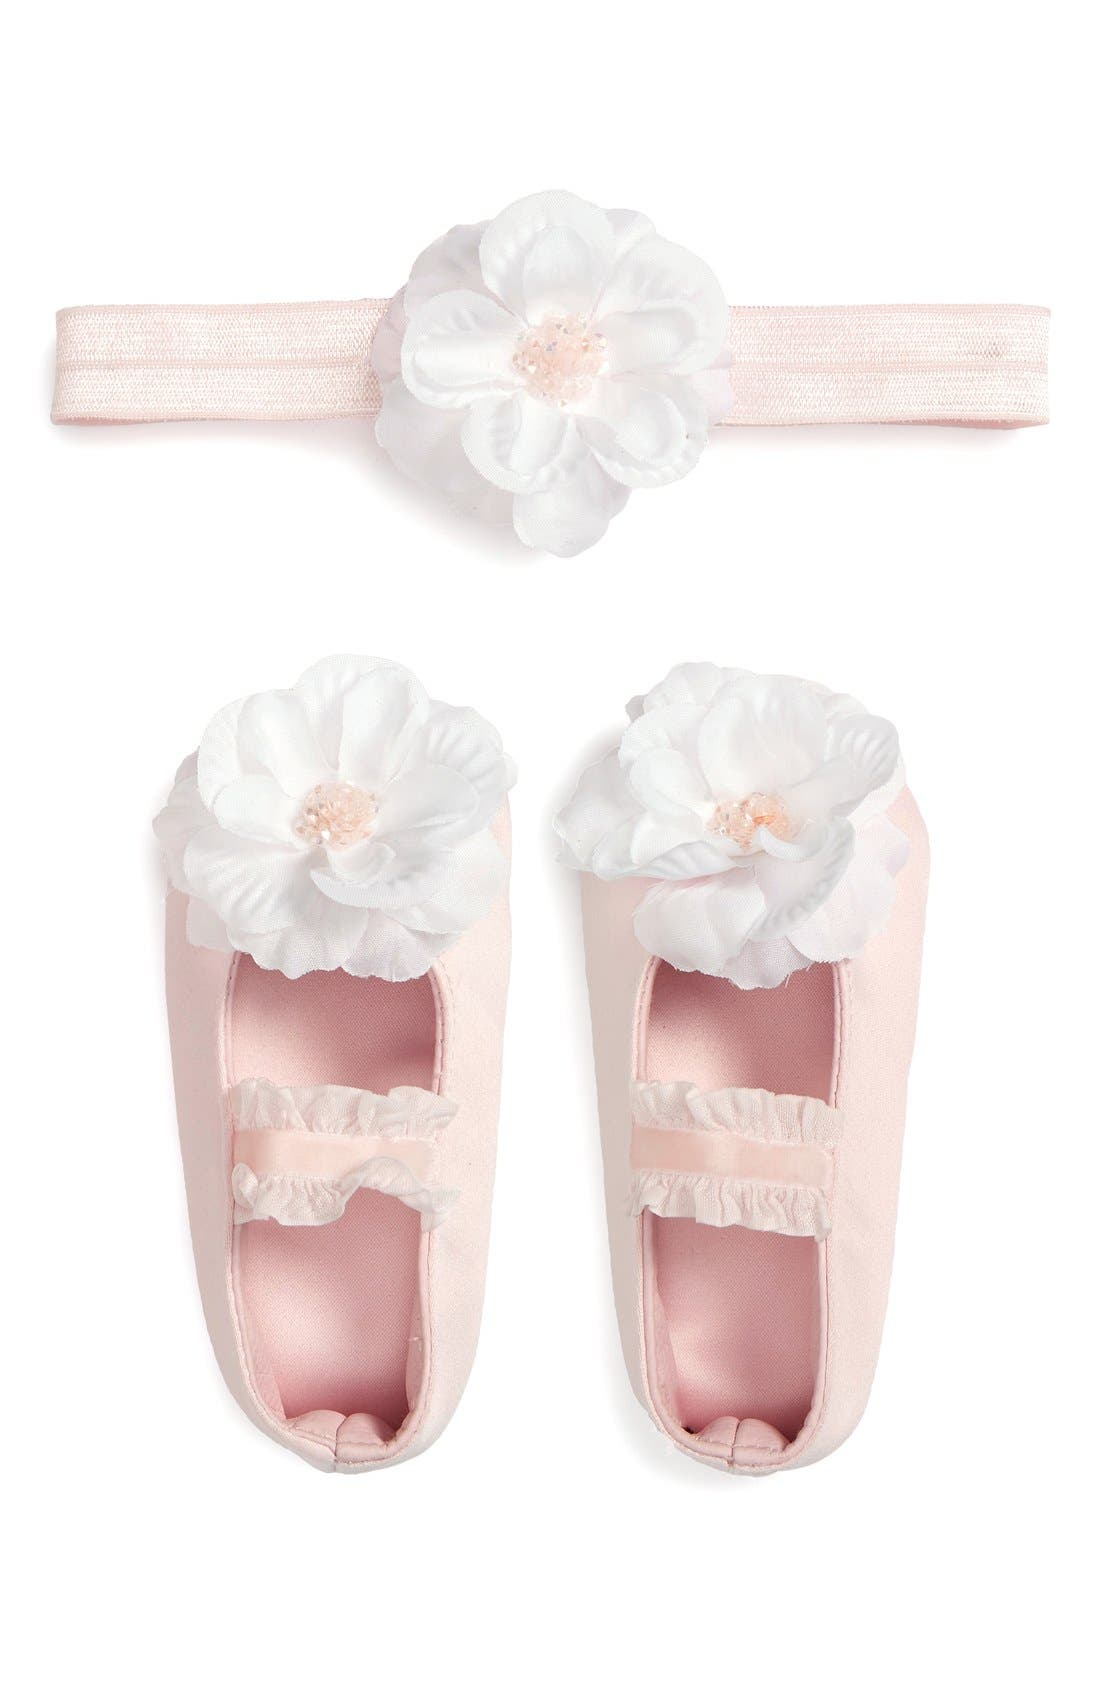 Main Image - PLH Bows & Laces Headband & Shoes Gift Set (Infant)